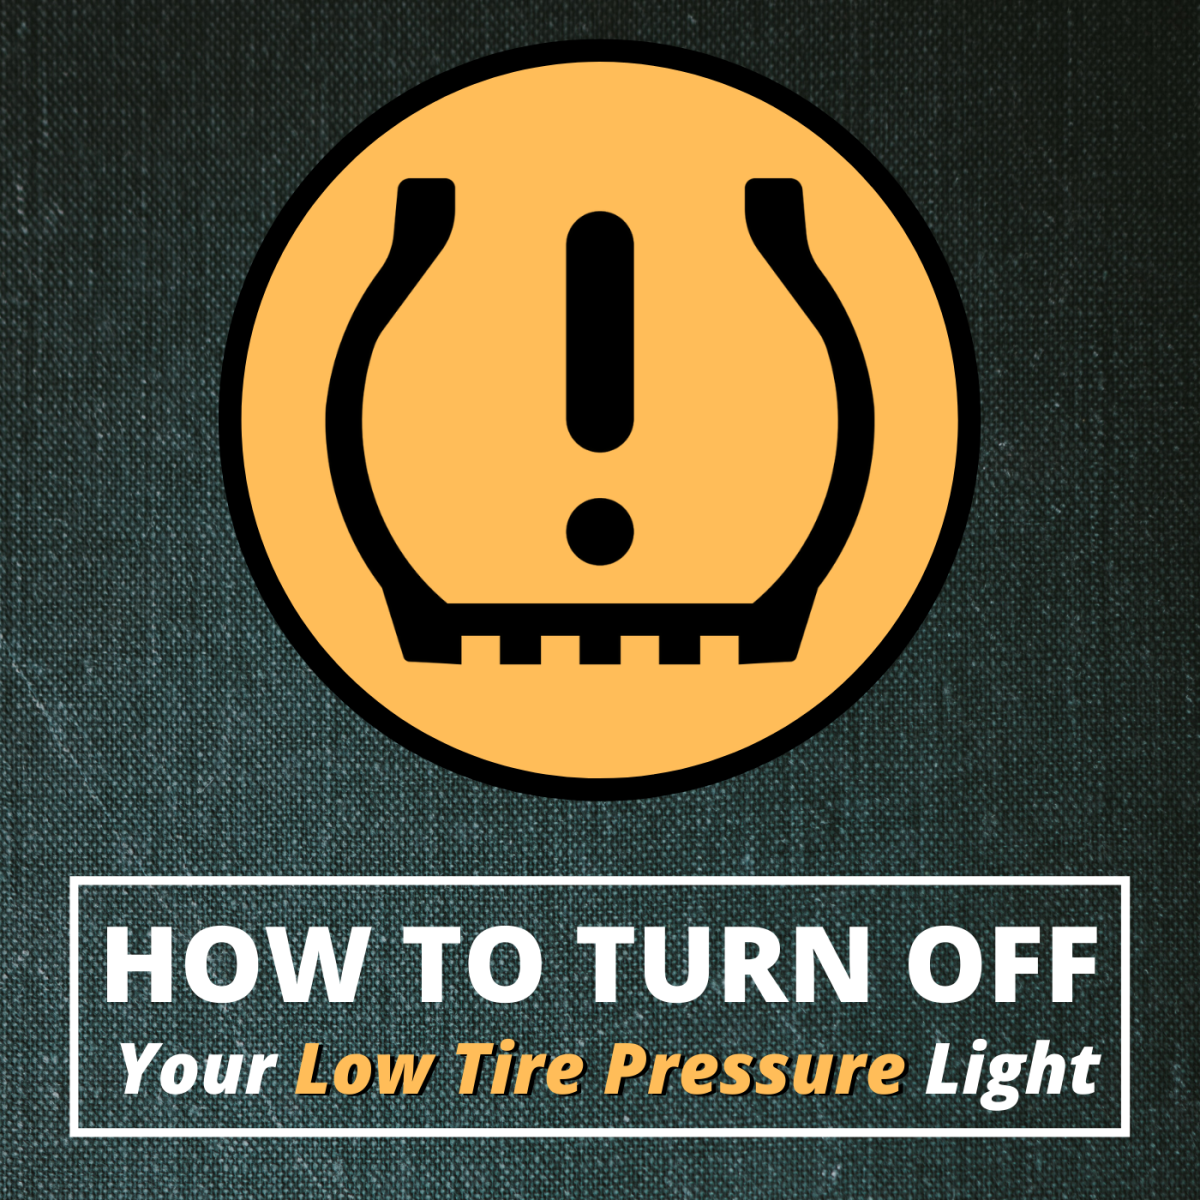 Did your low tire pressure light remain on after you filled up your tires? Learn why this can happen and what you can do to turn it off.